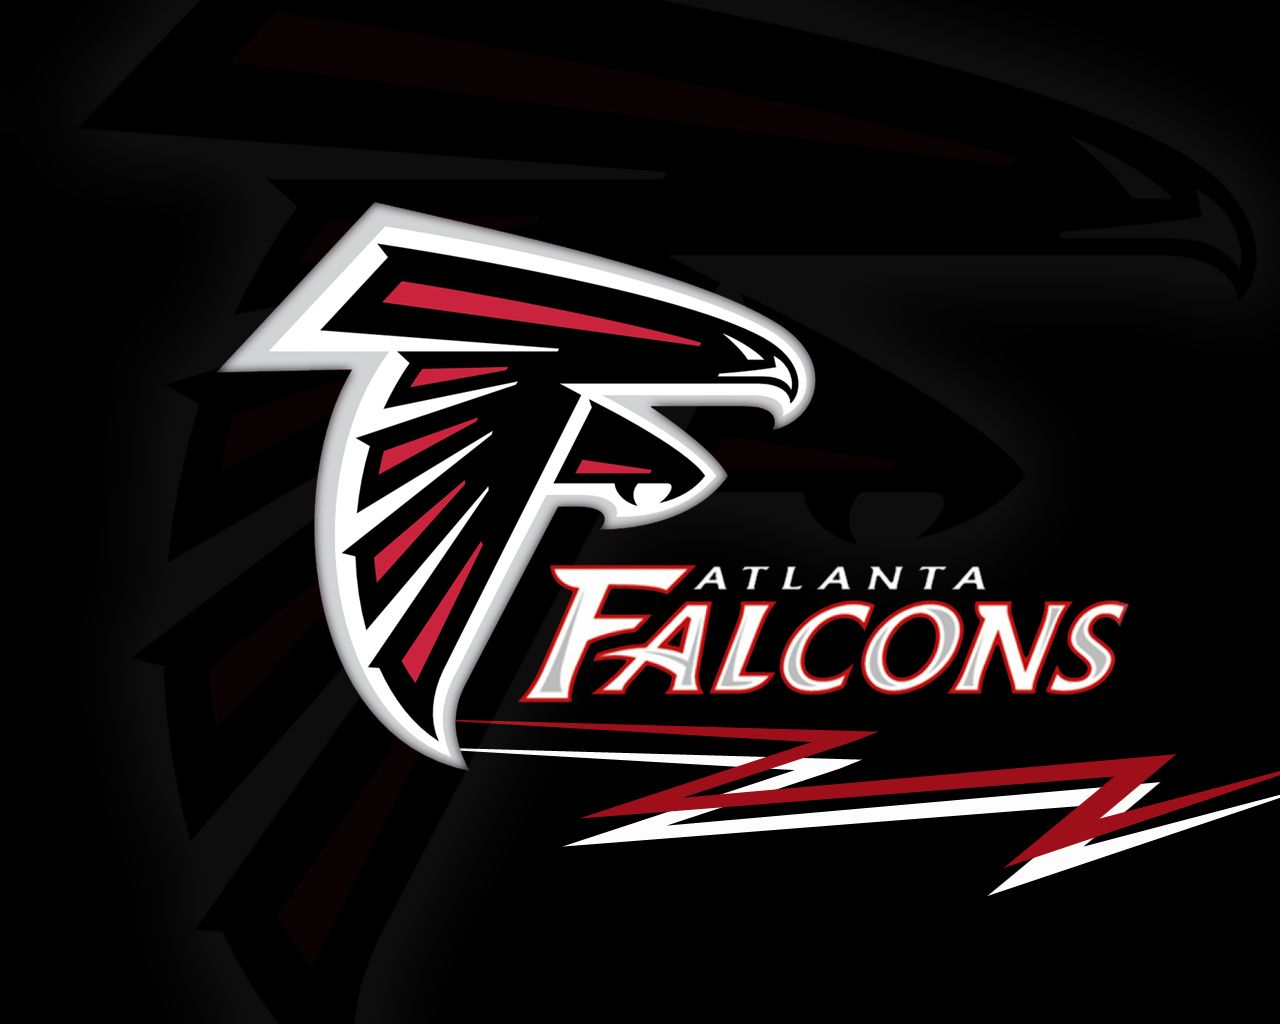 Falcons Wallpaper: Nfl Wallpaper Atlanta Falcons